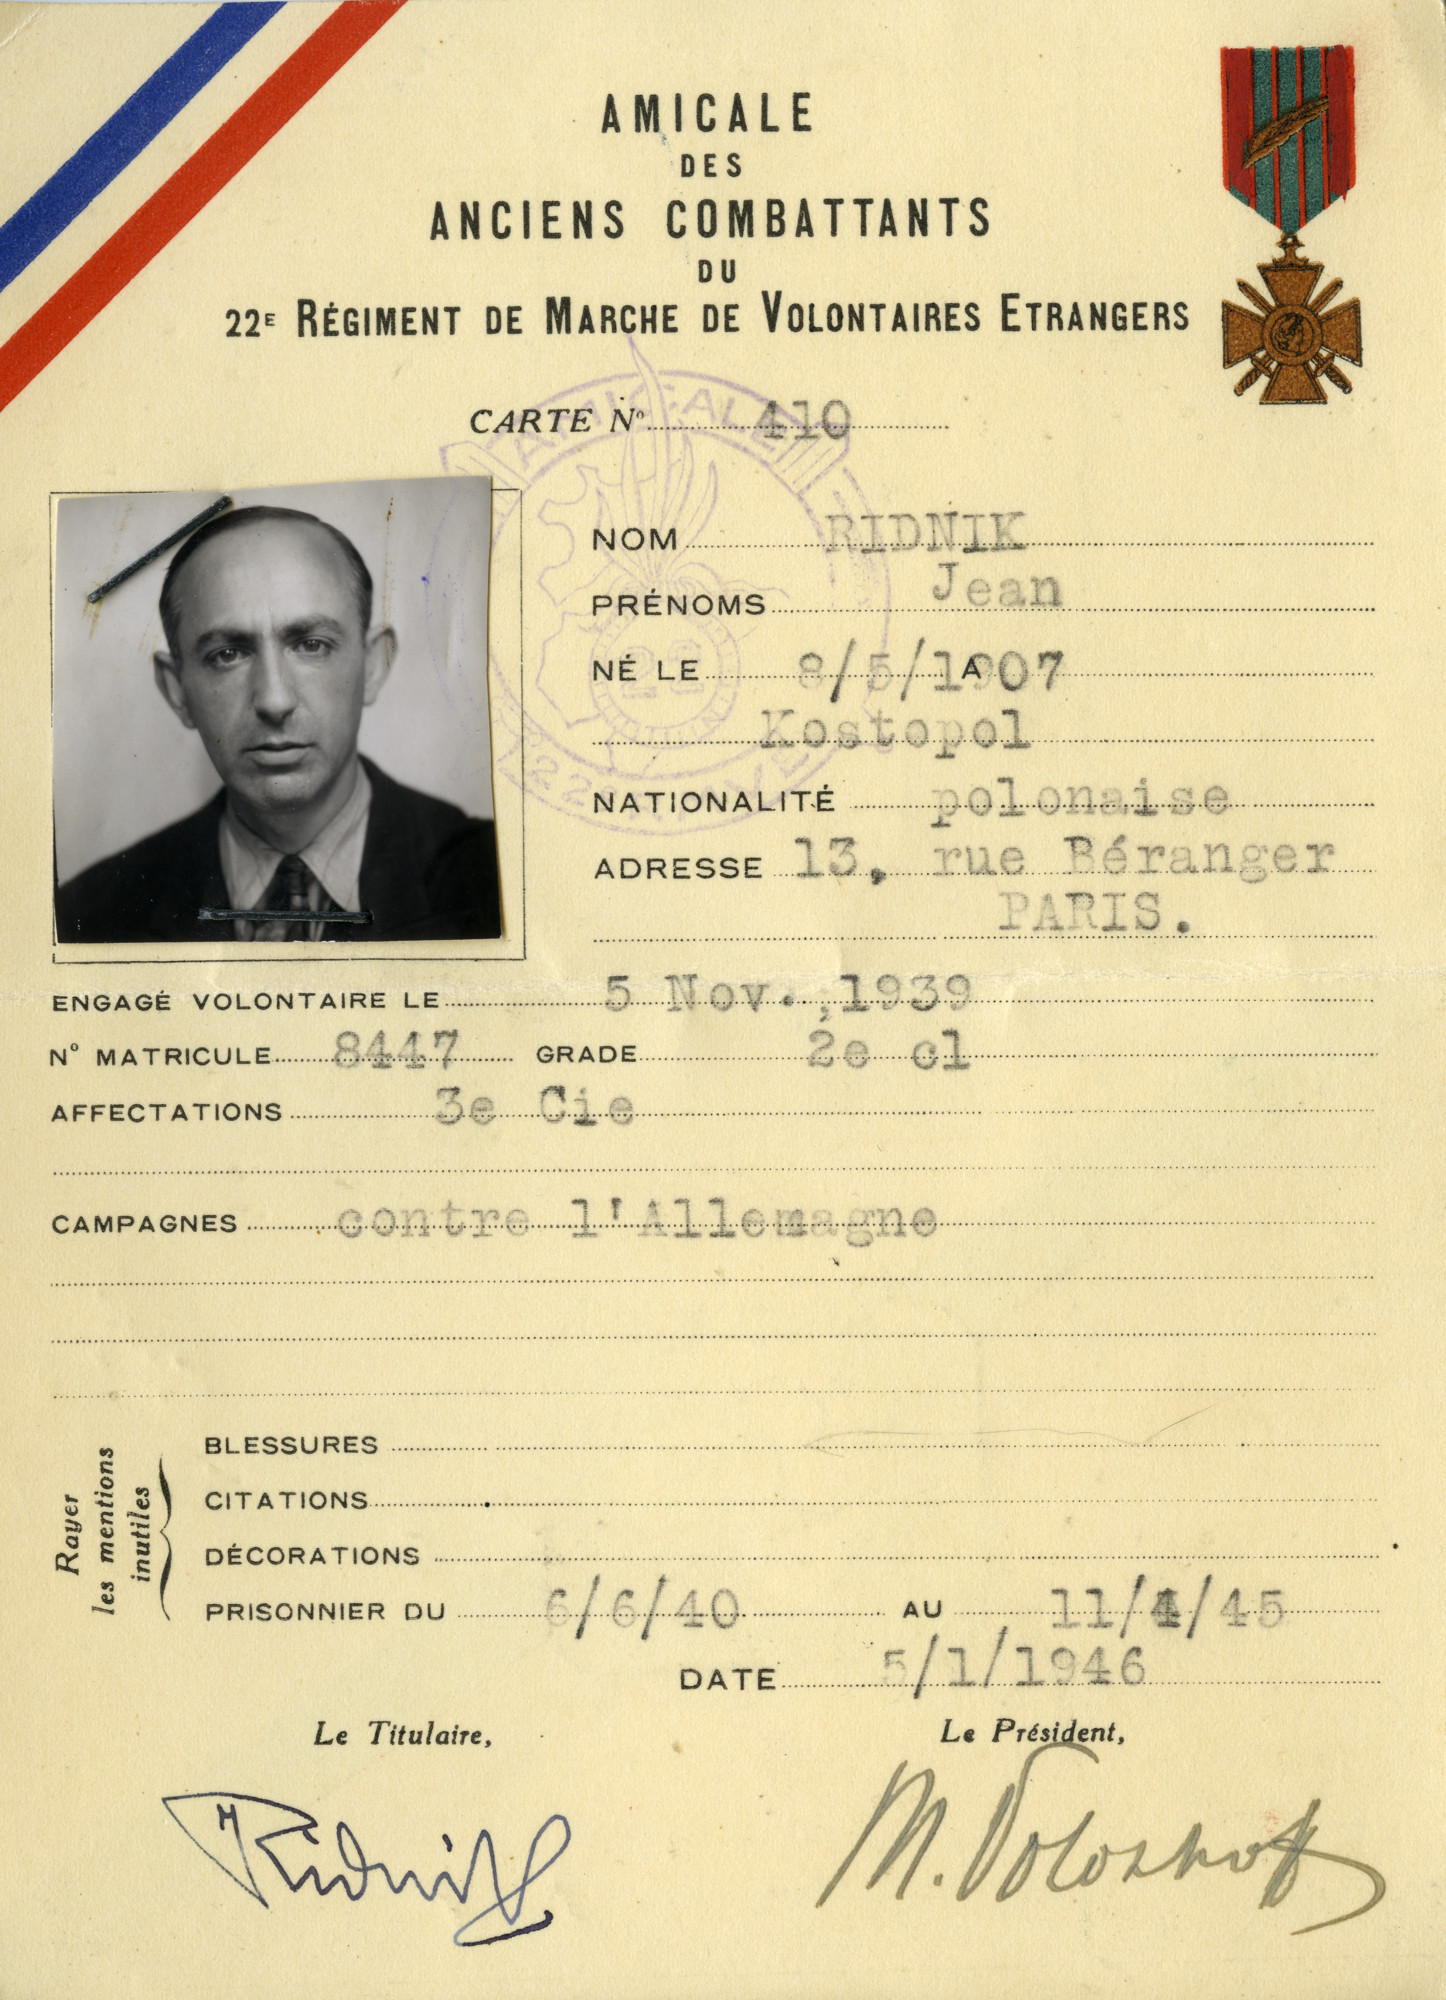 Card attesting to Yaakov (Jean/Jankl) Ridnik having spent time as a prisoner of war.